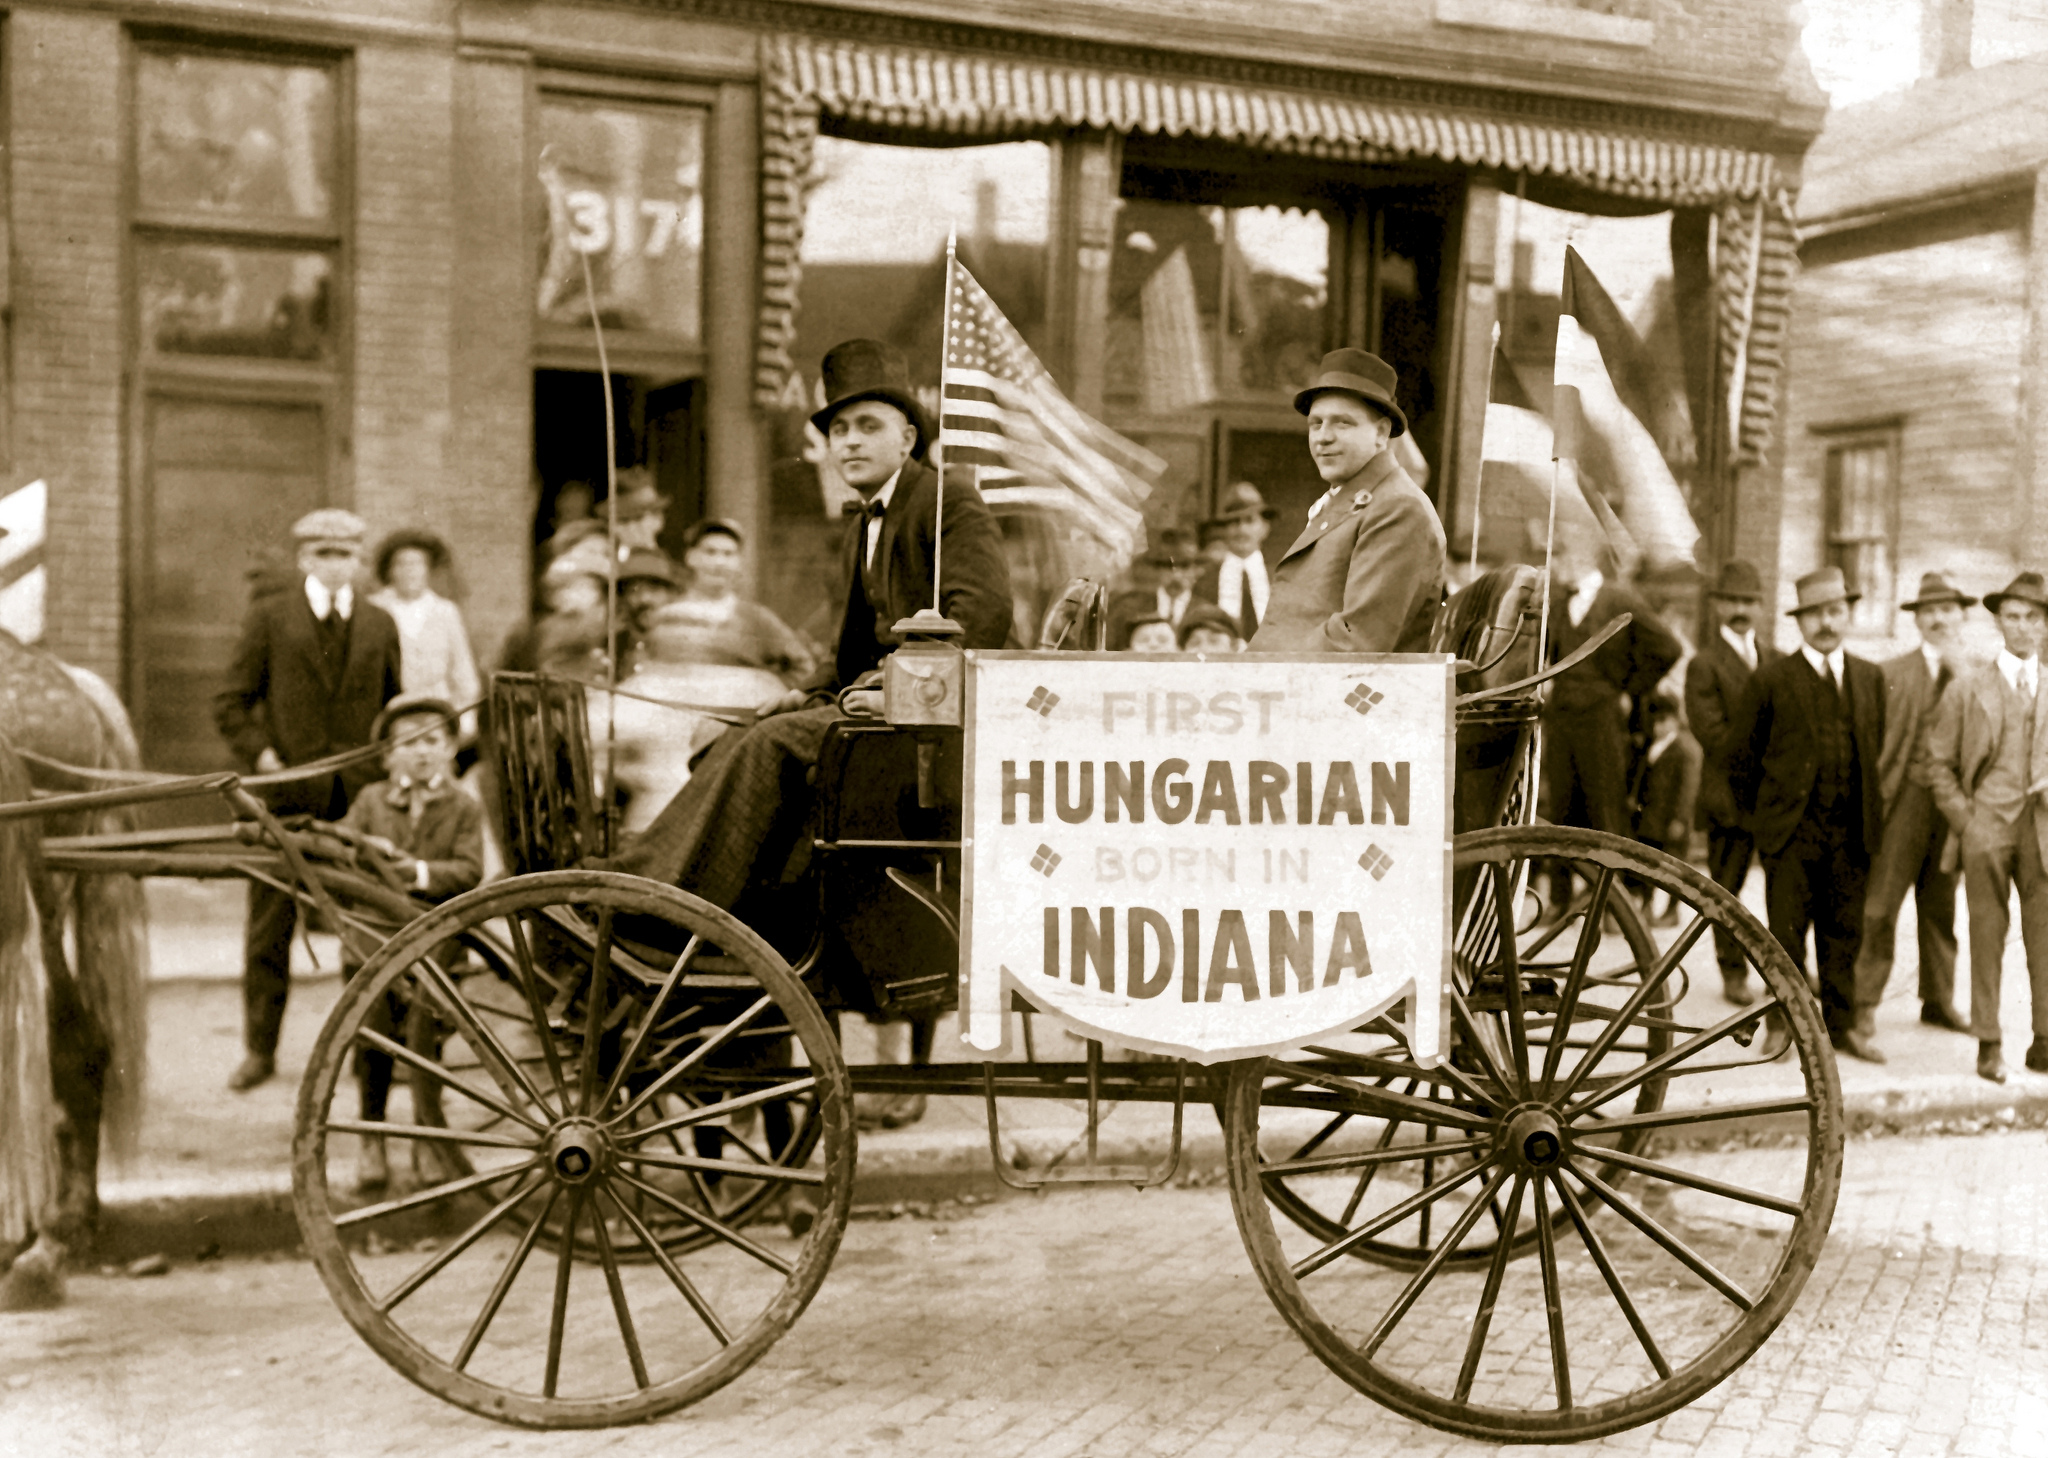 Photo of Ernest 'Hank' Kovach, the first Hungarian born in Indiana (1909). Image via South Bend Tribune.